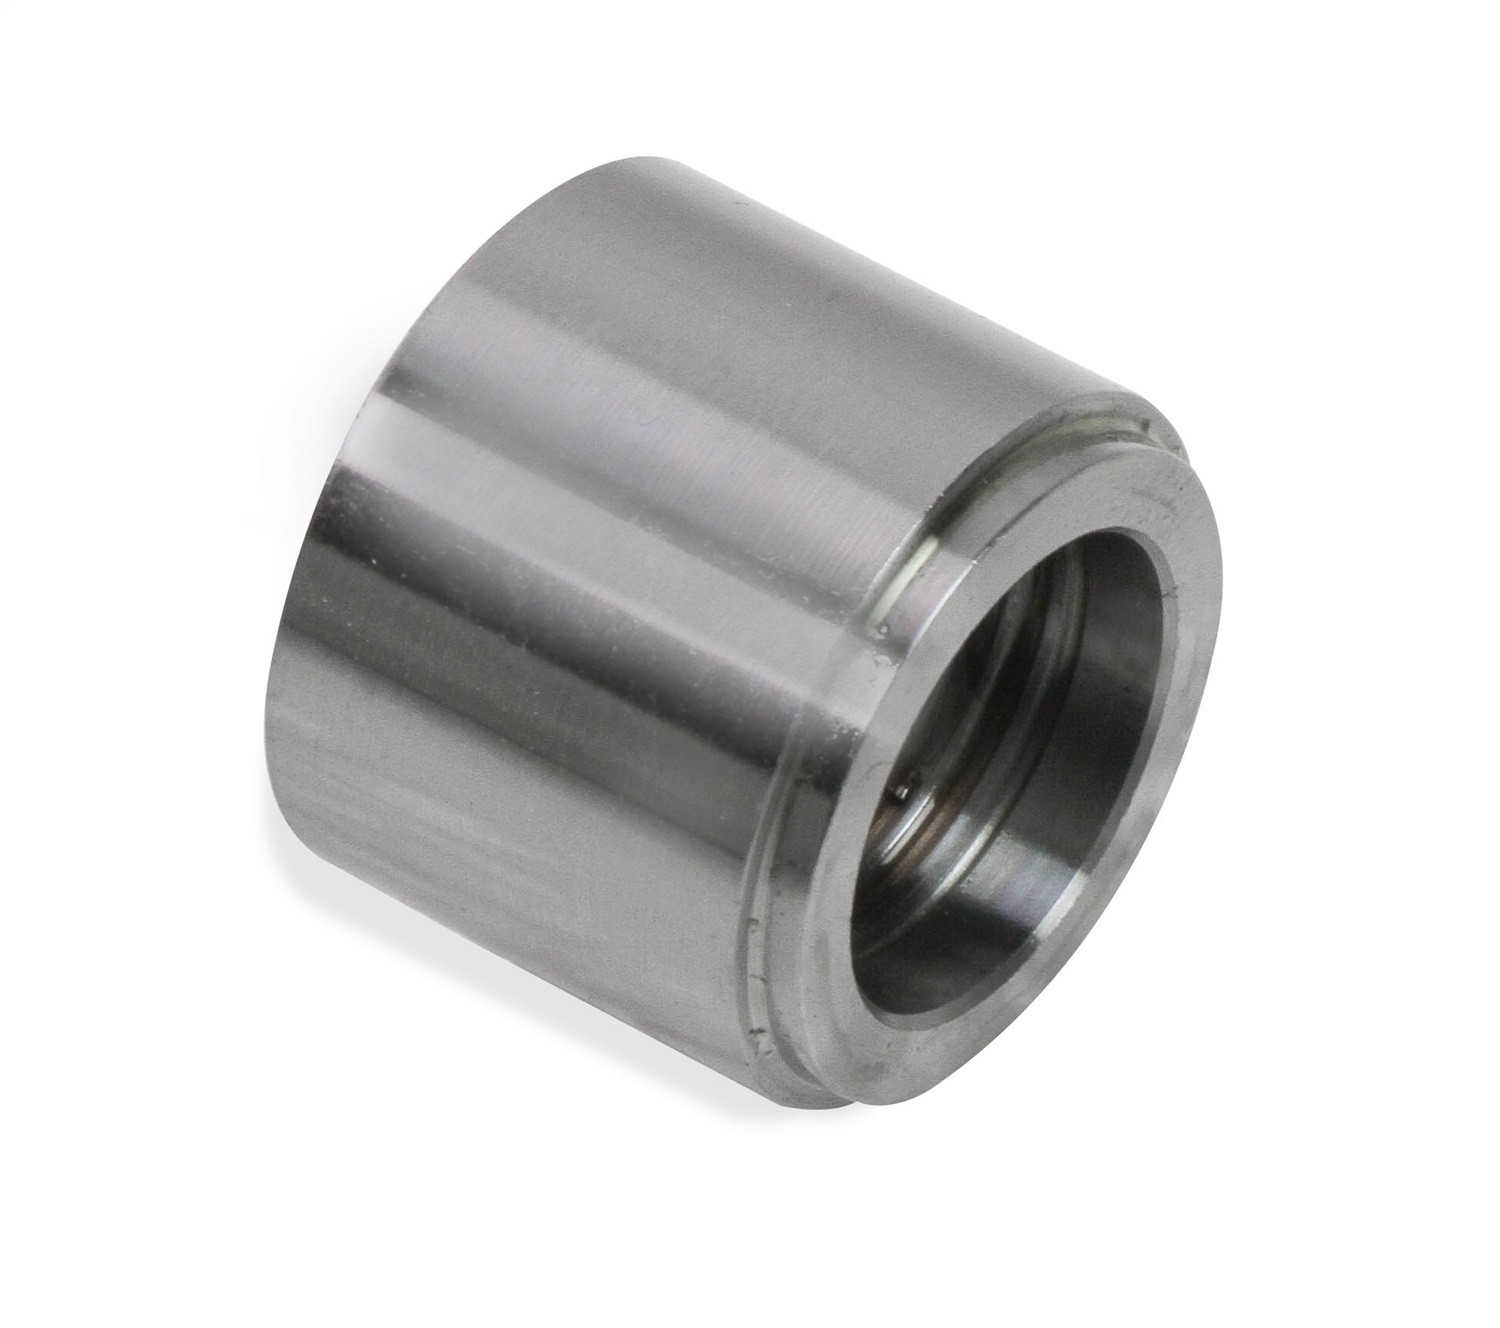 Earls Plumbing 996603ERL Steel NPT Weld Boss